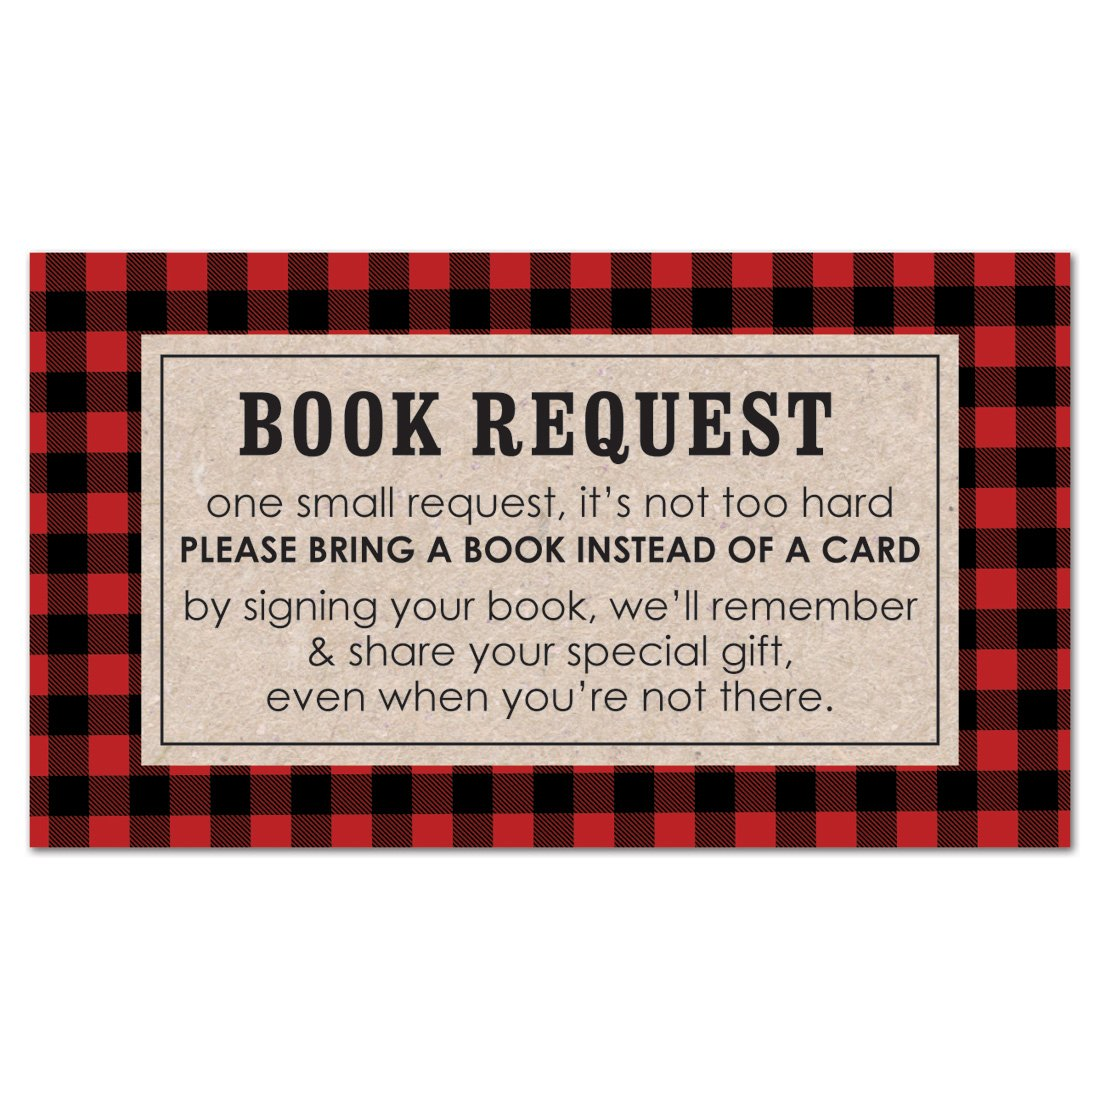 MyExpression.com 48 cnt Lumberjack Baby Shower Book Request Cards by MyExpression.com (Image #1)